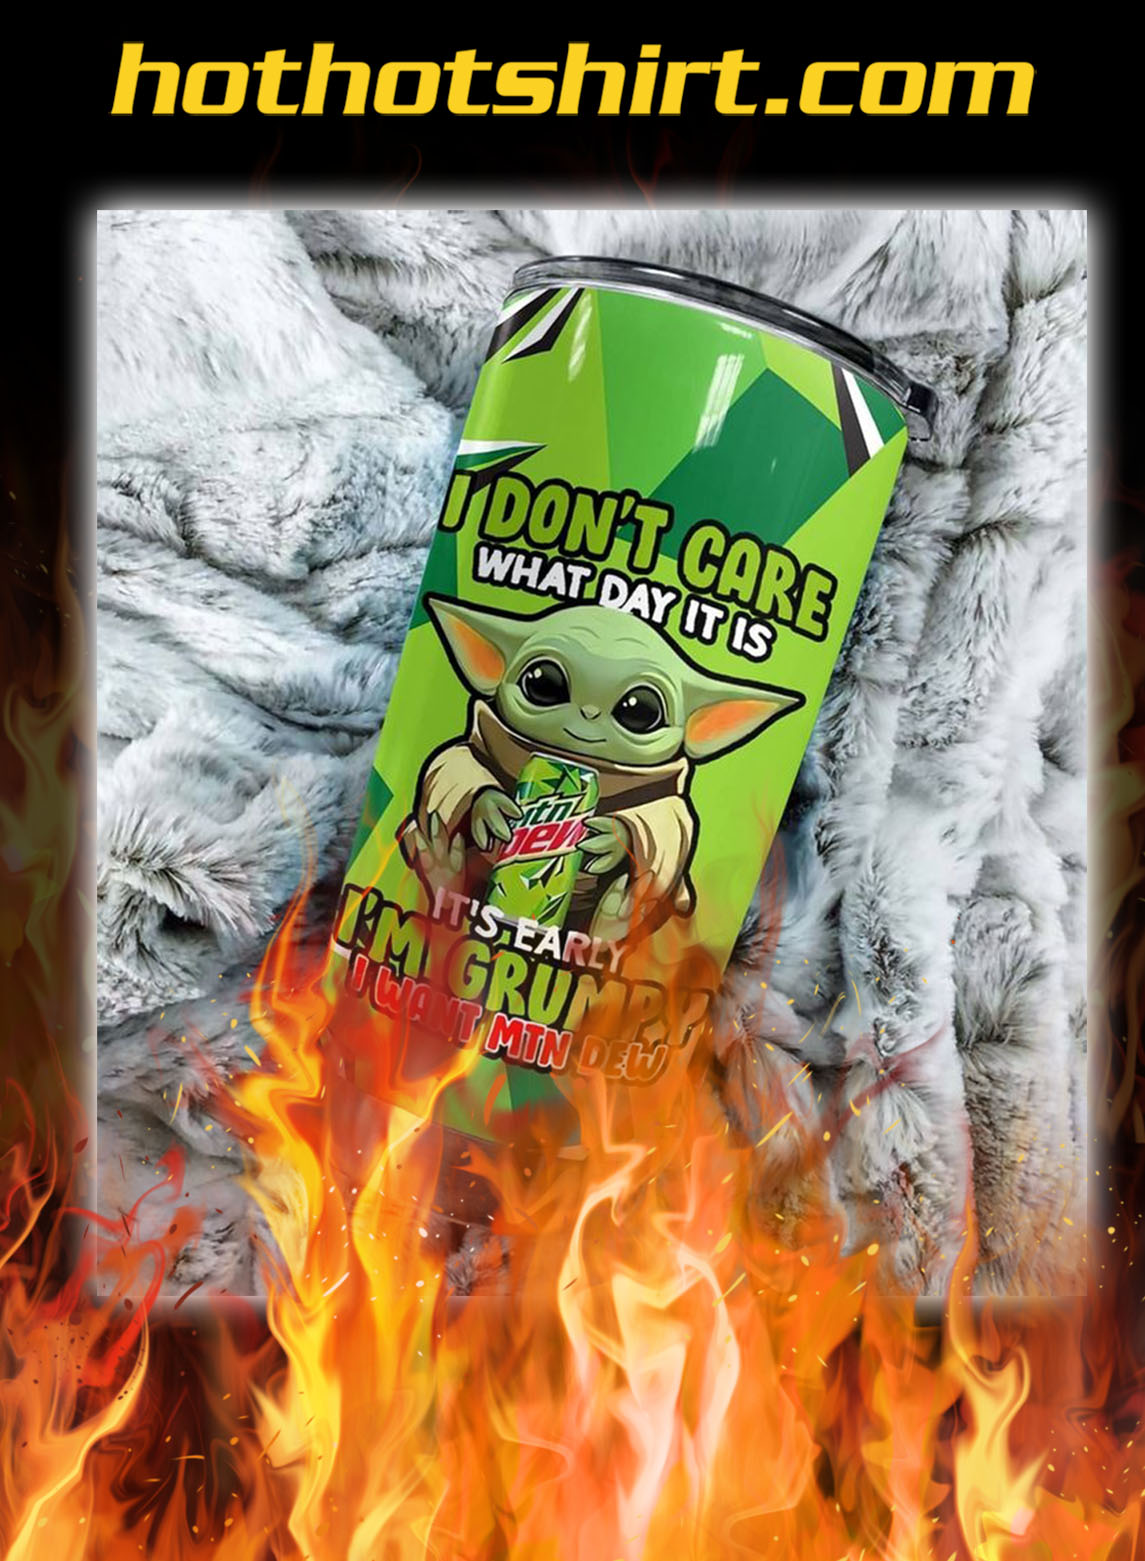 Baby yoda mountain dew i don't care what day it is tumbler- pic 1